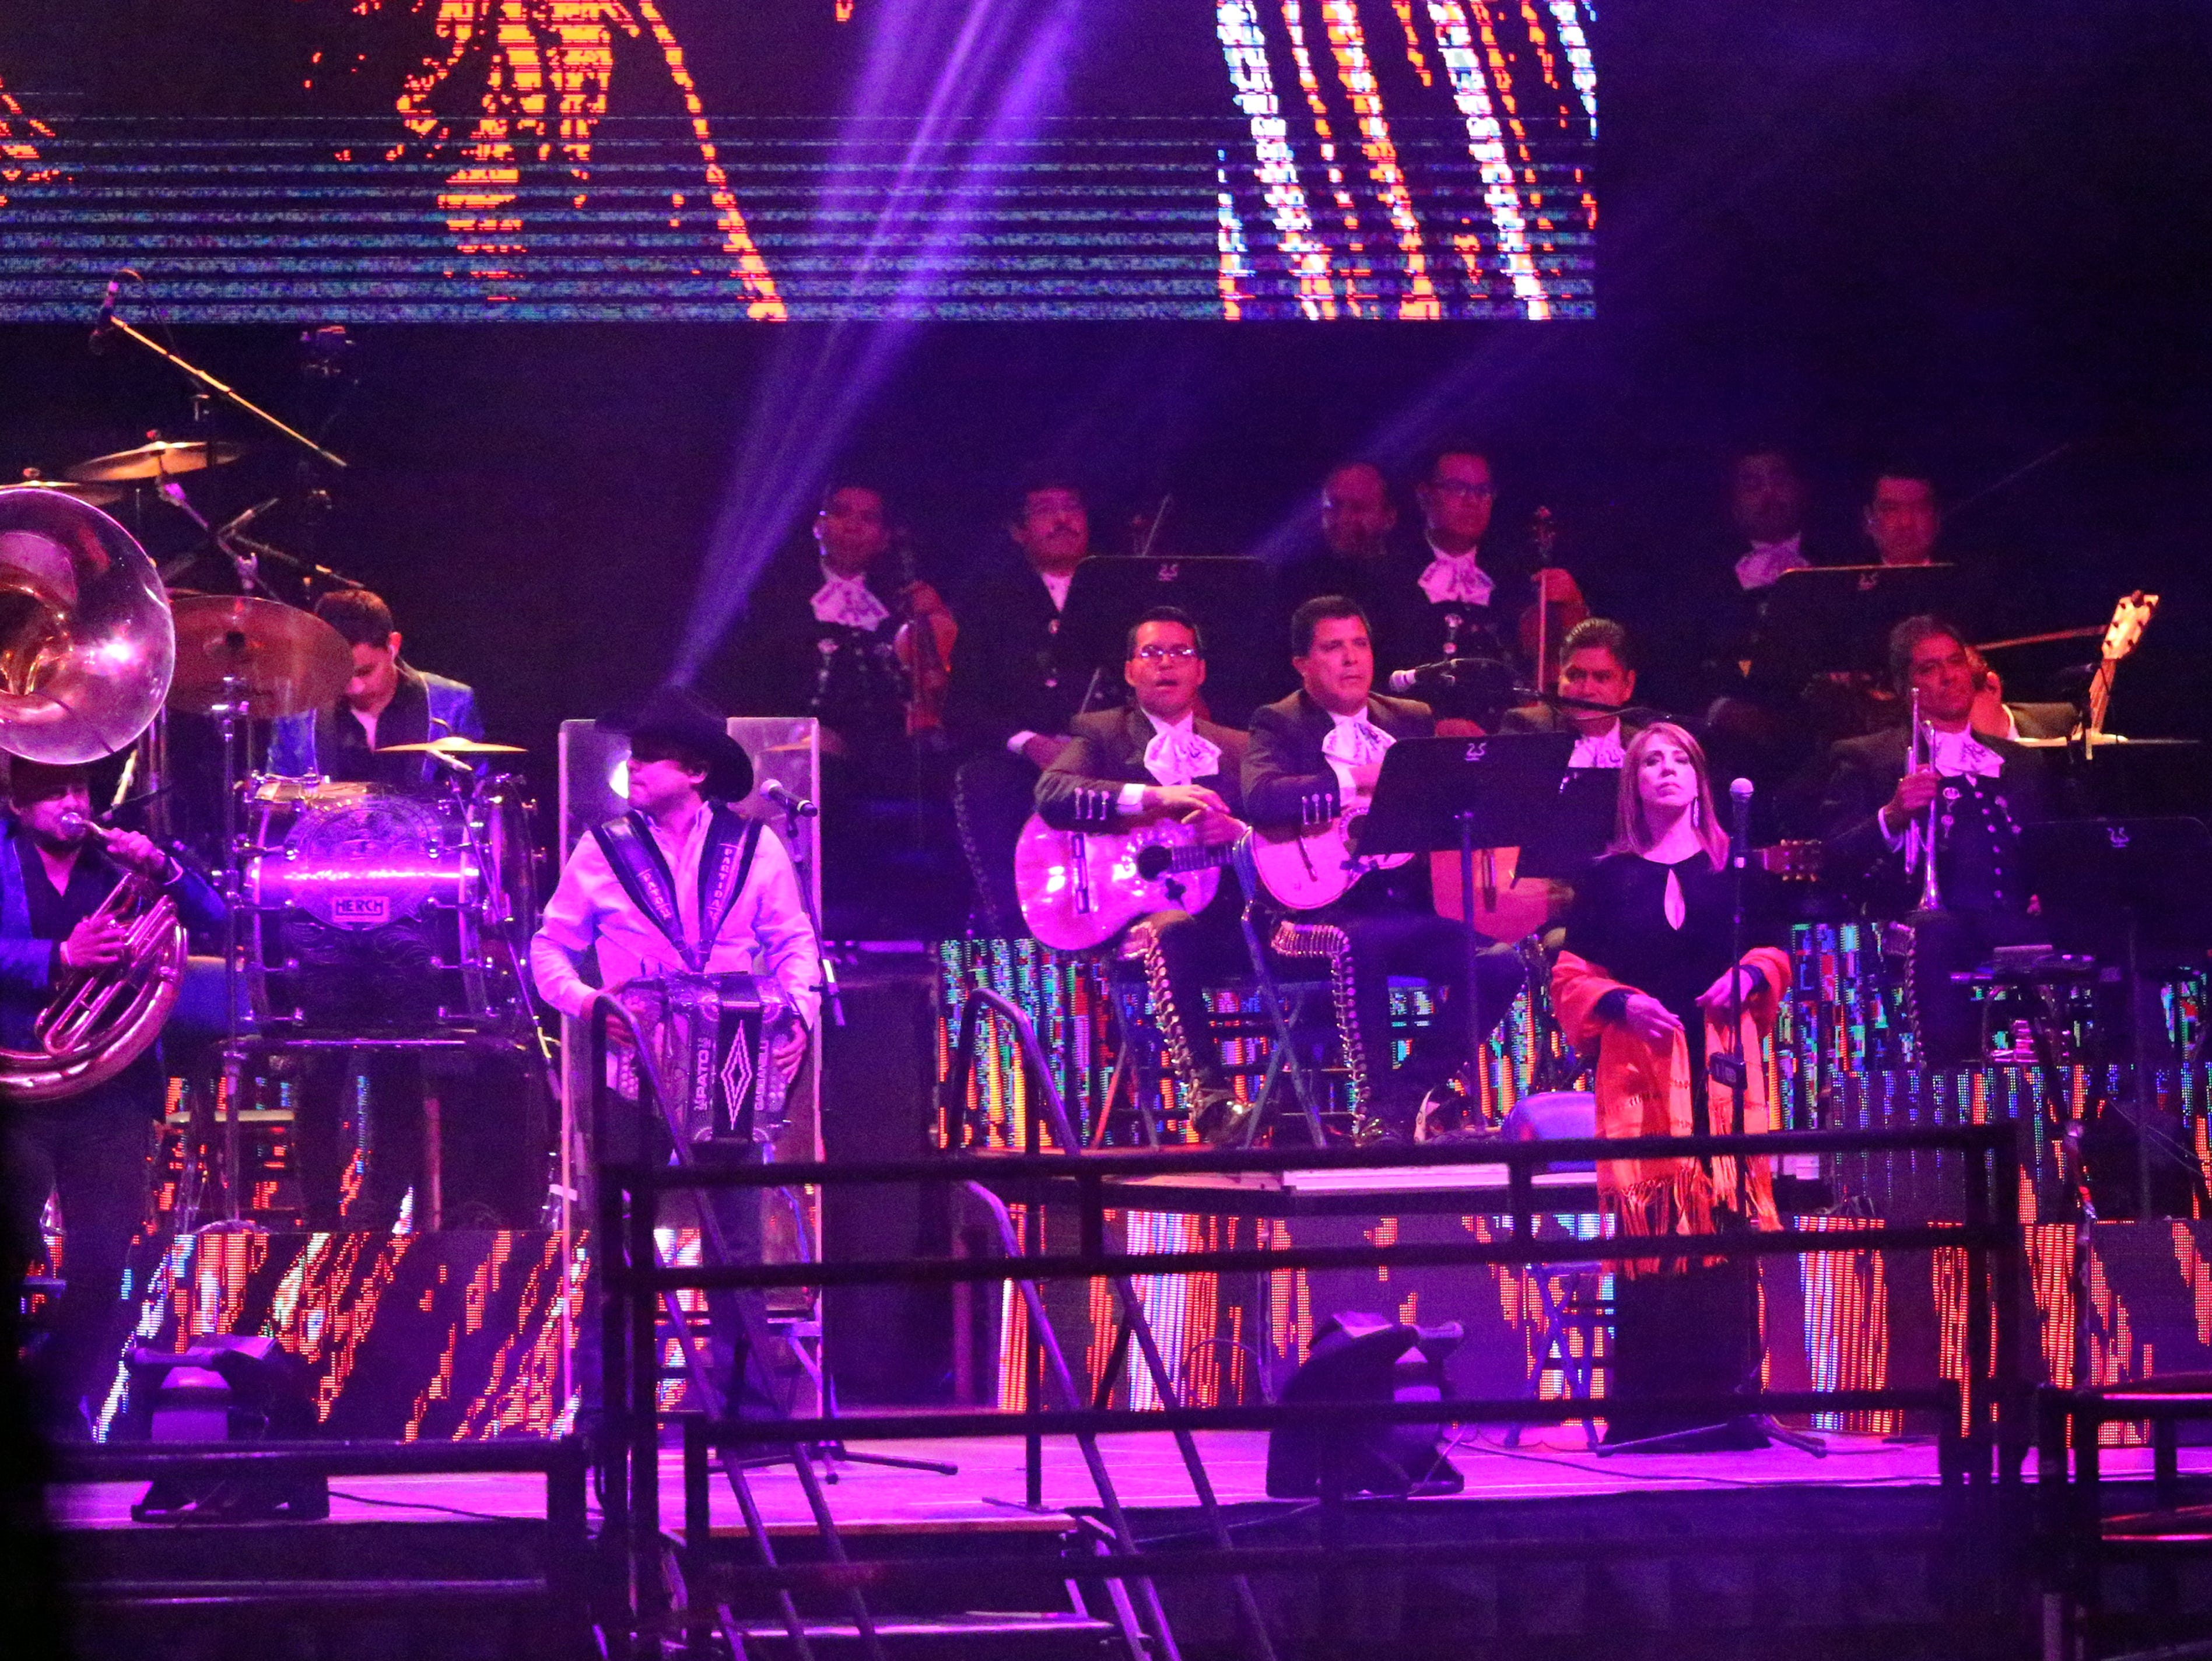 A complete orchestra and band supported the Aguilar family during their Saturday night show in the El Paso County Coliseum/